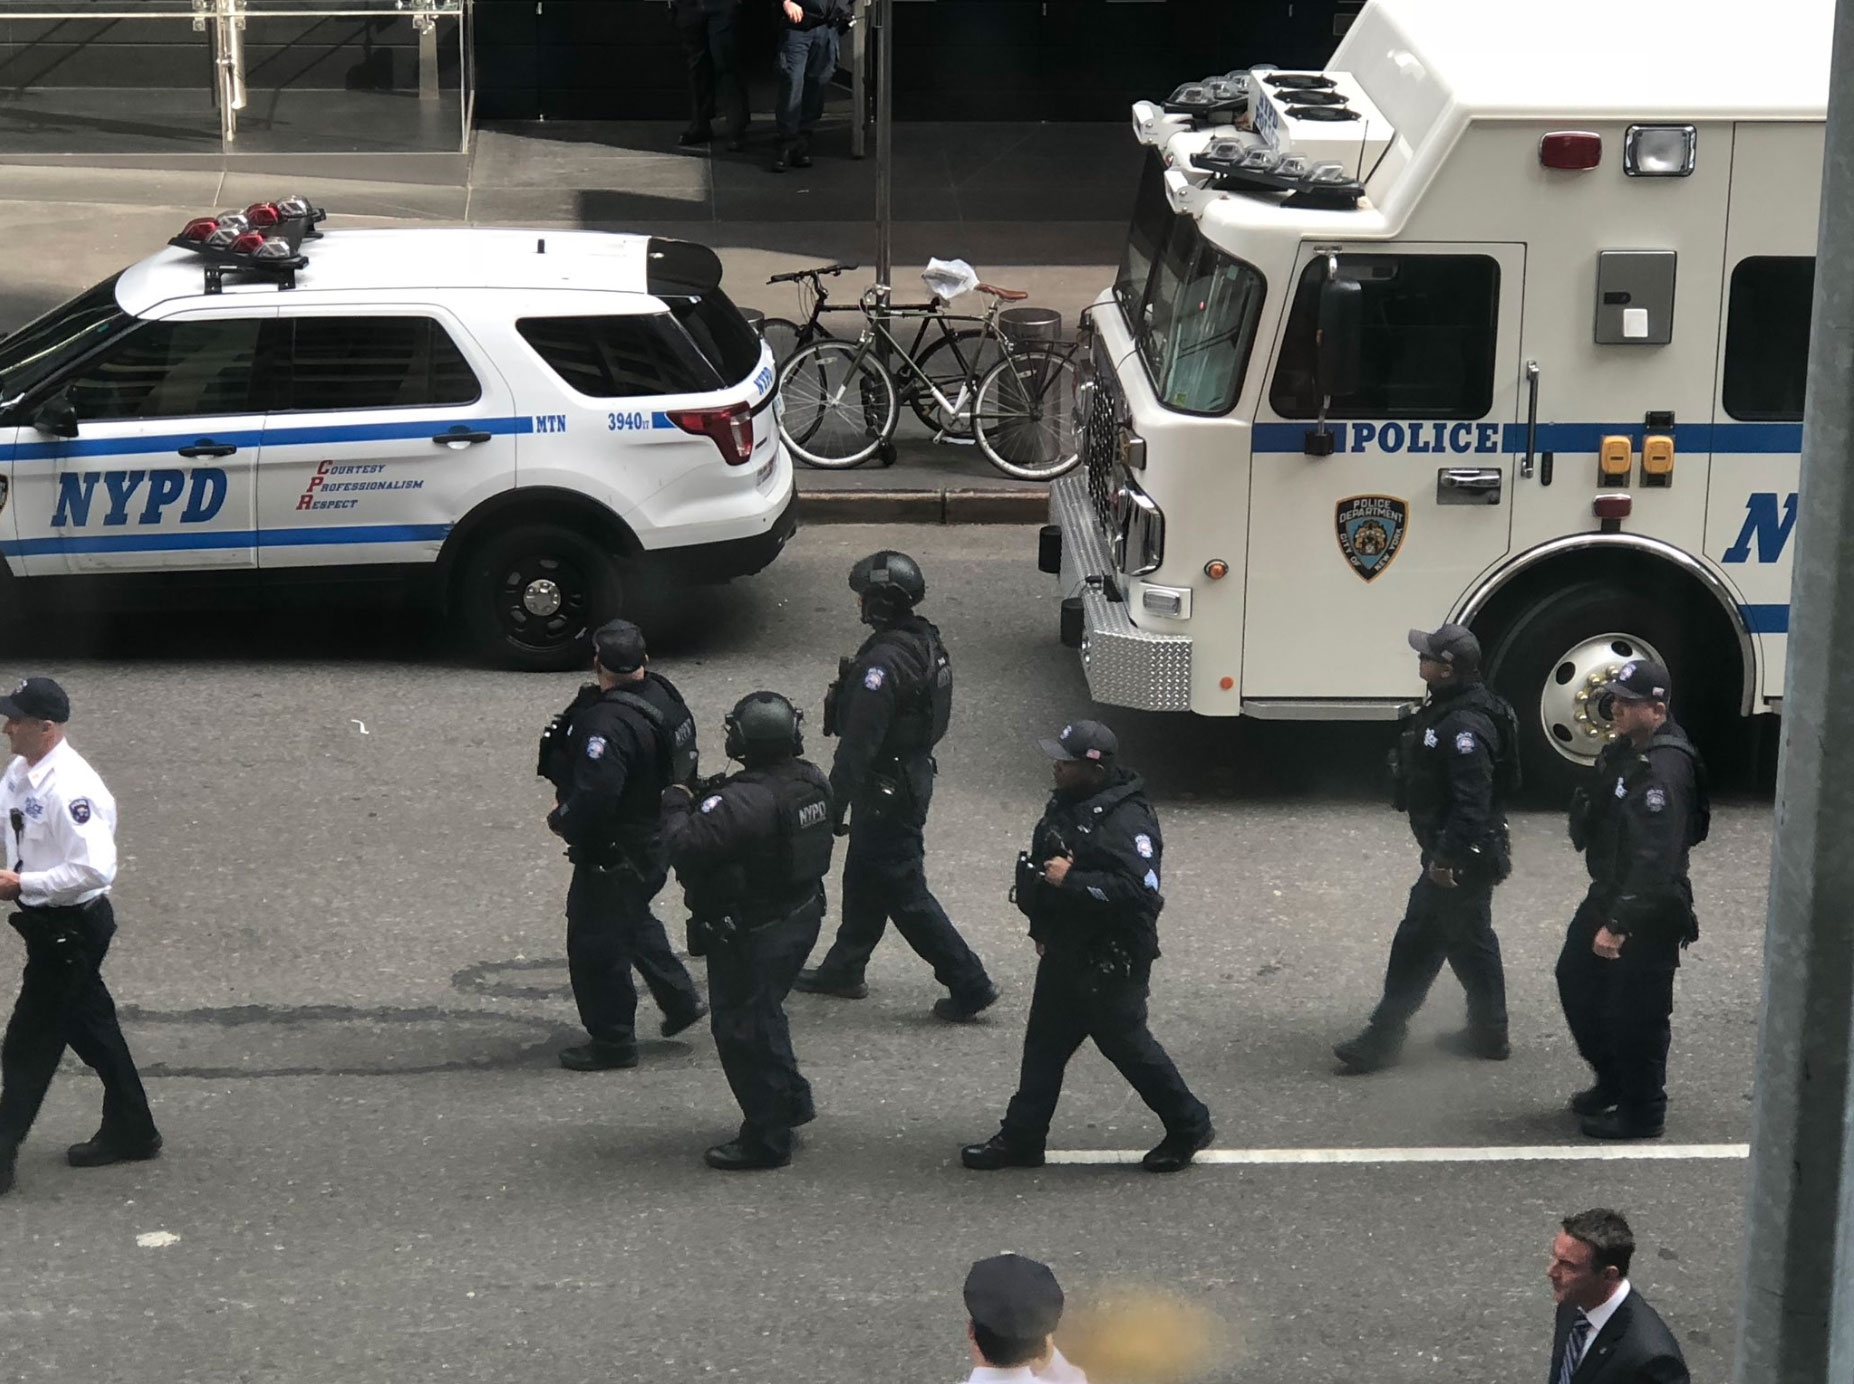 <div class='meta'><div class='origin-logo' data-origin='none'></div><span class='caption-text' data-credit='Mark Wilson/Twitter'>Authorities are shown on the scene near the Time Warner Center, where the CNN offices are located in New York.</span></div>